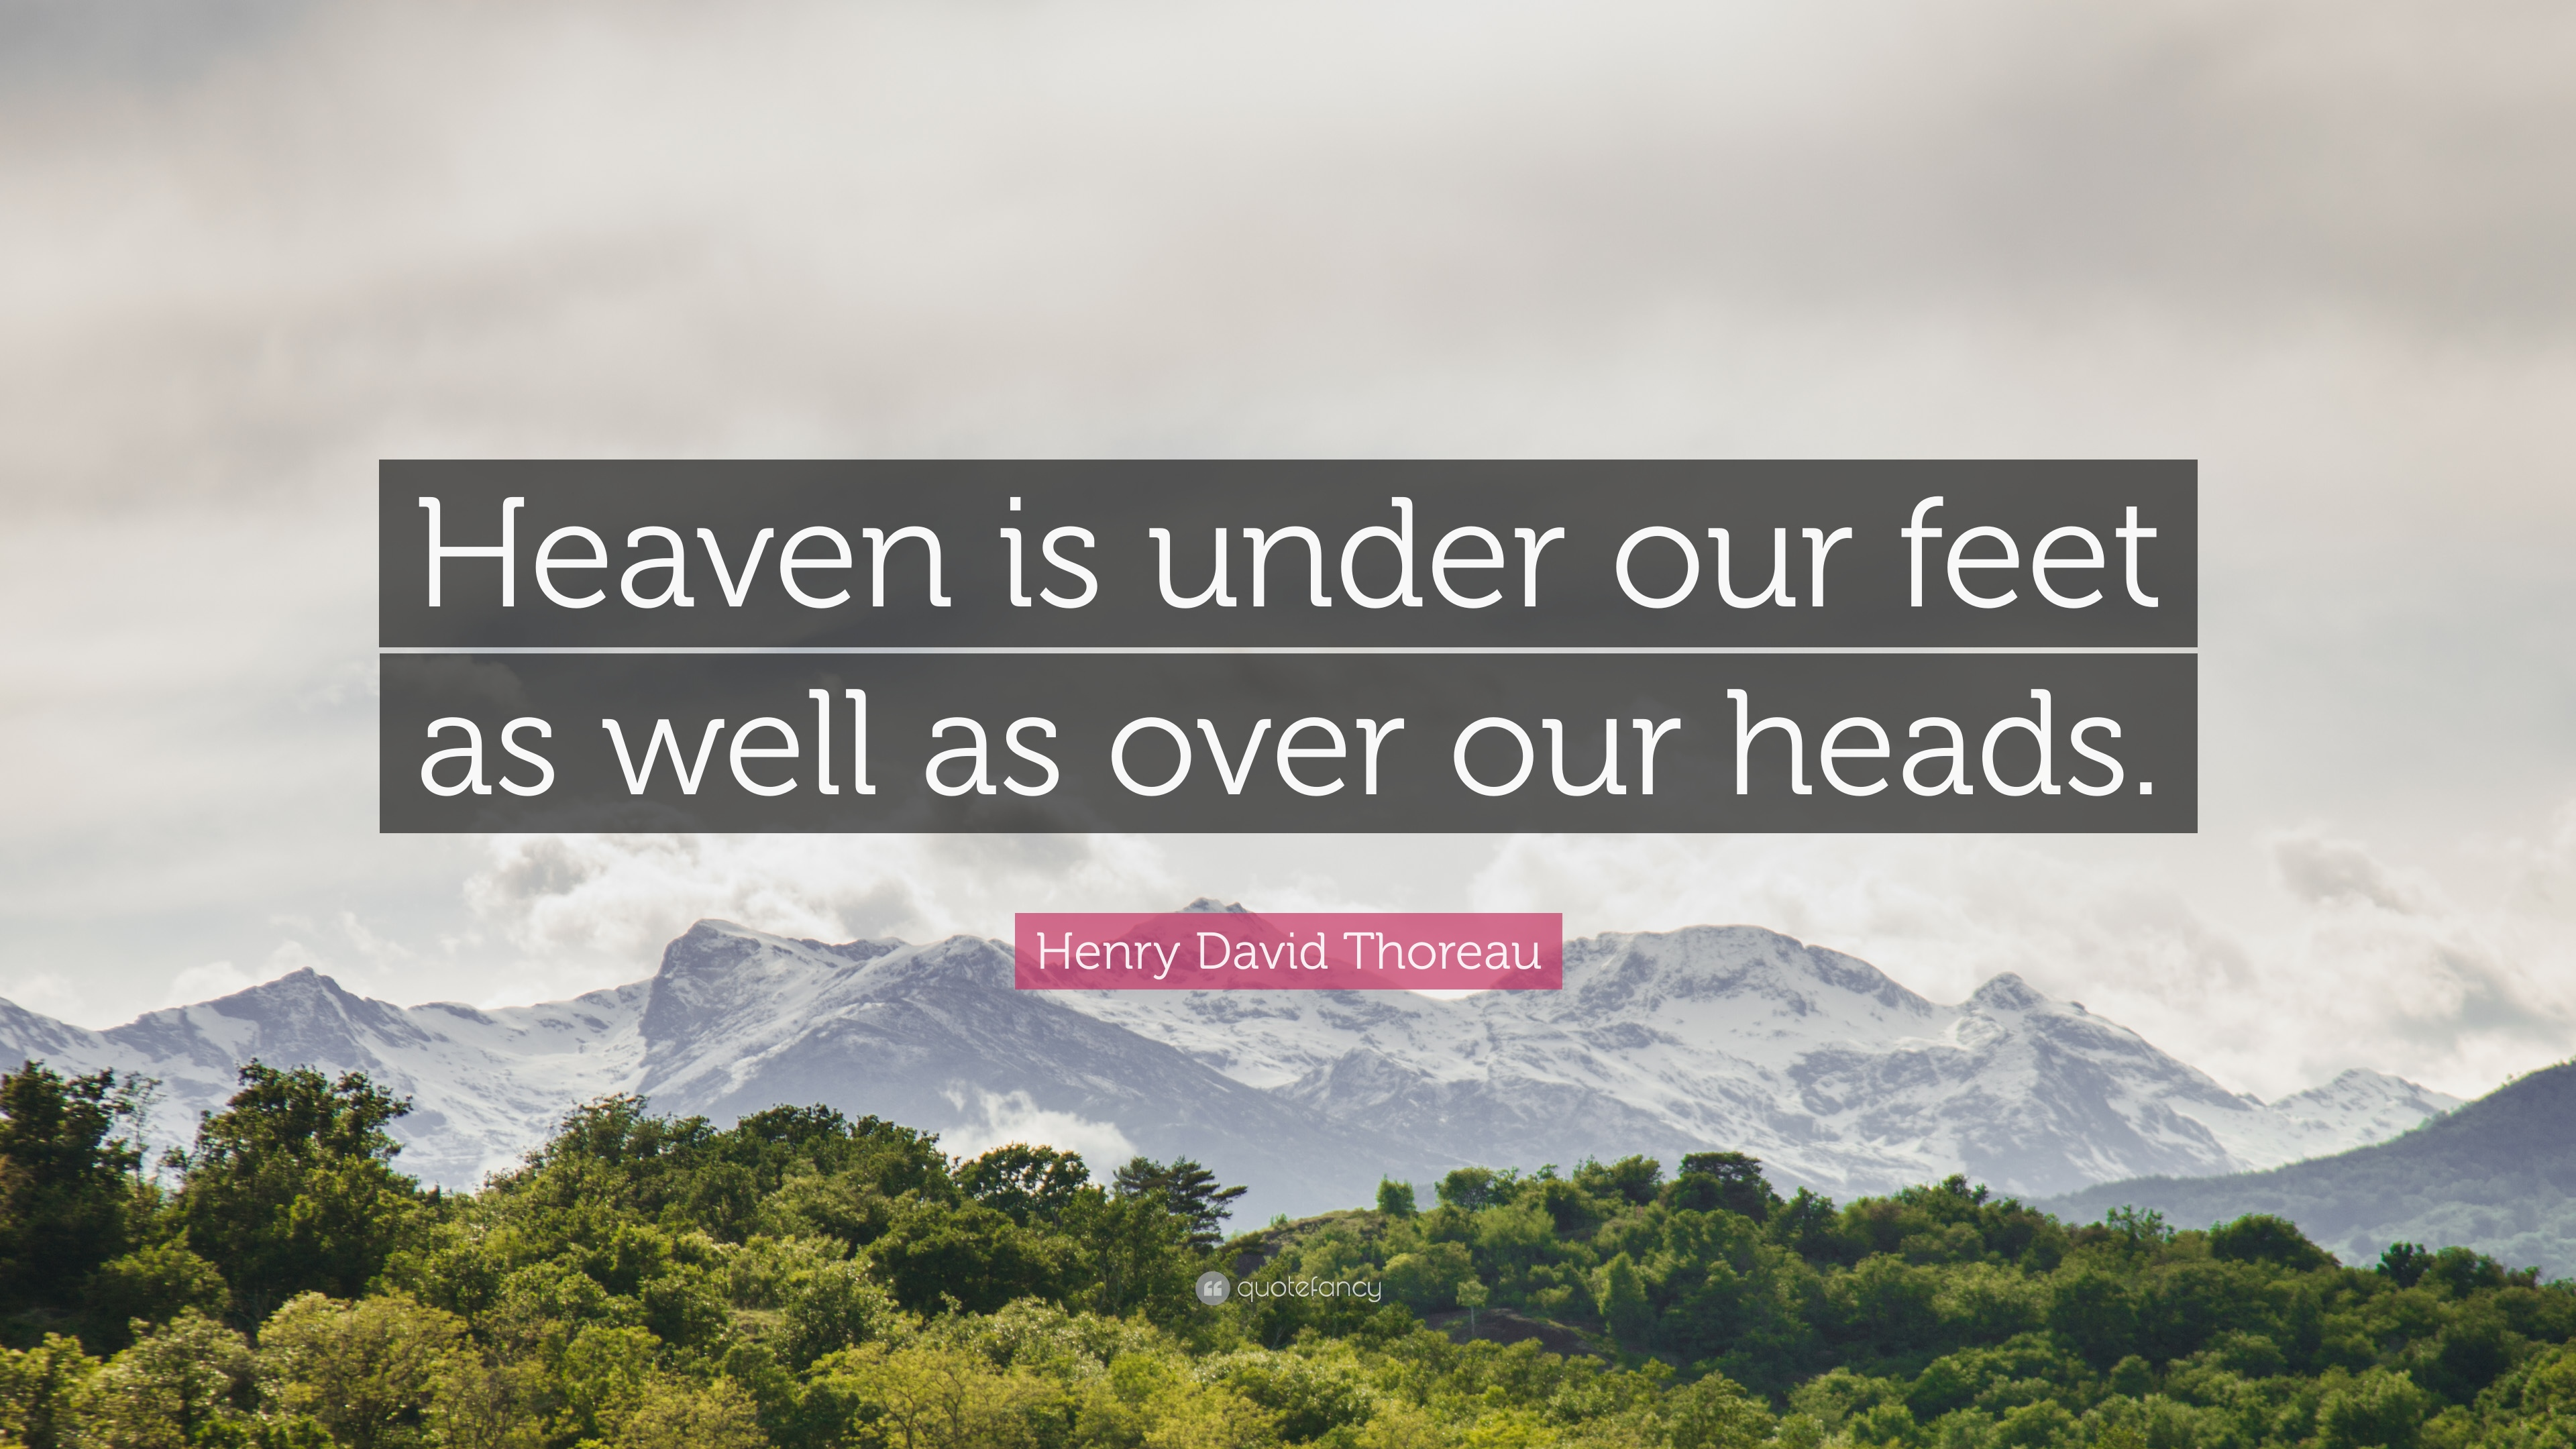 Henry David Thoreau Quote: U201cHeaven Is Under Our Feet As Well As Over Our